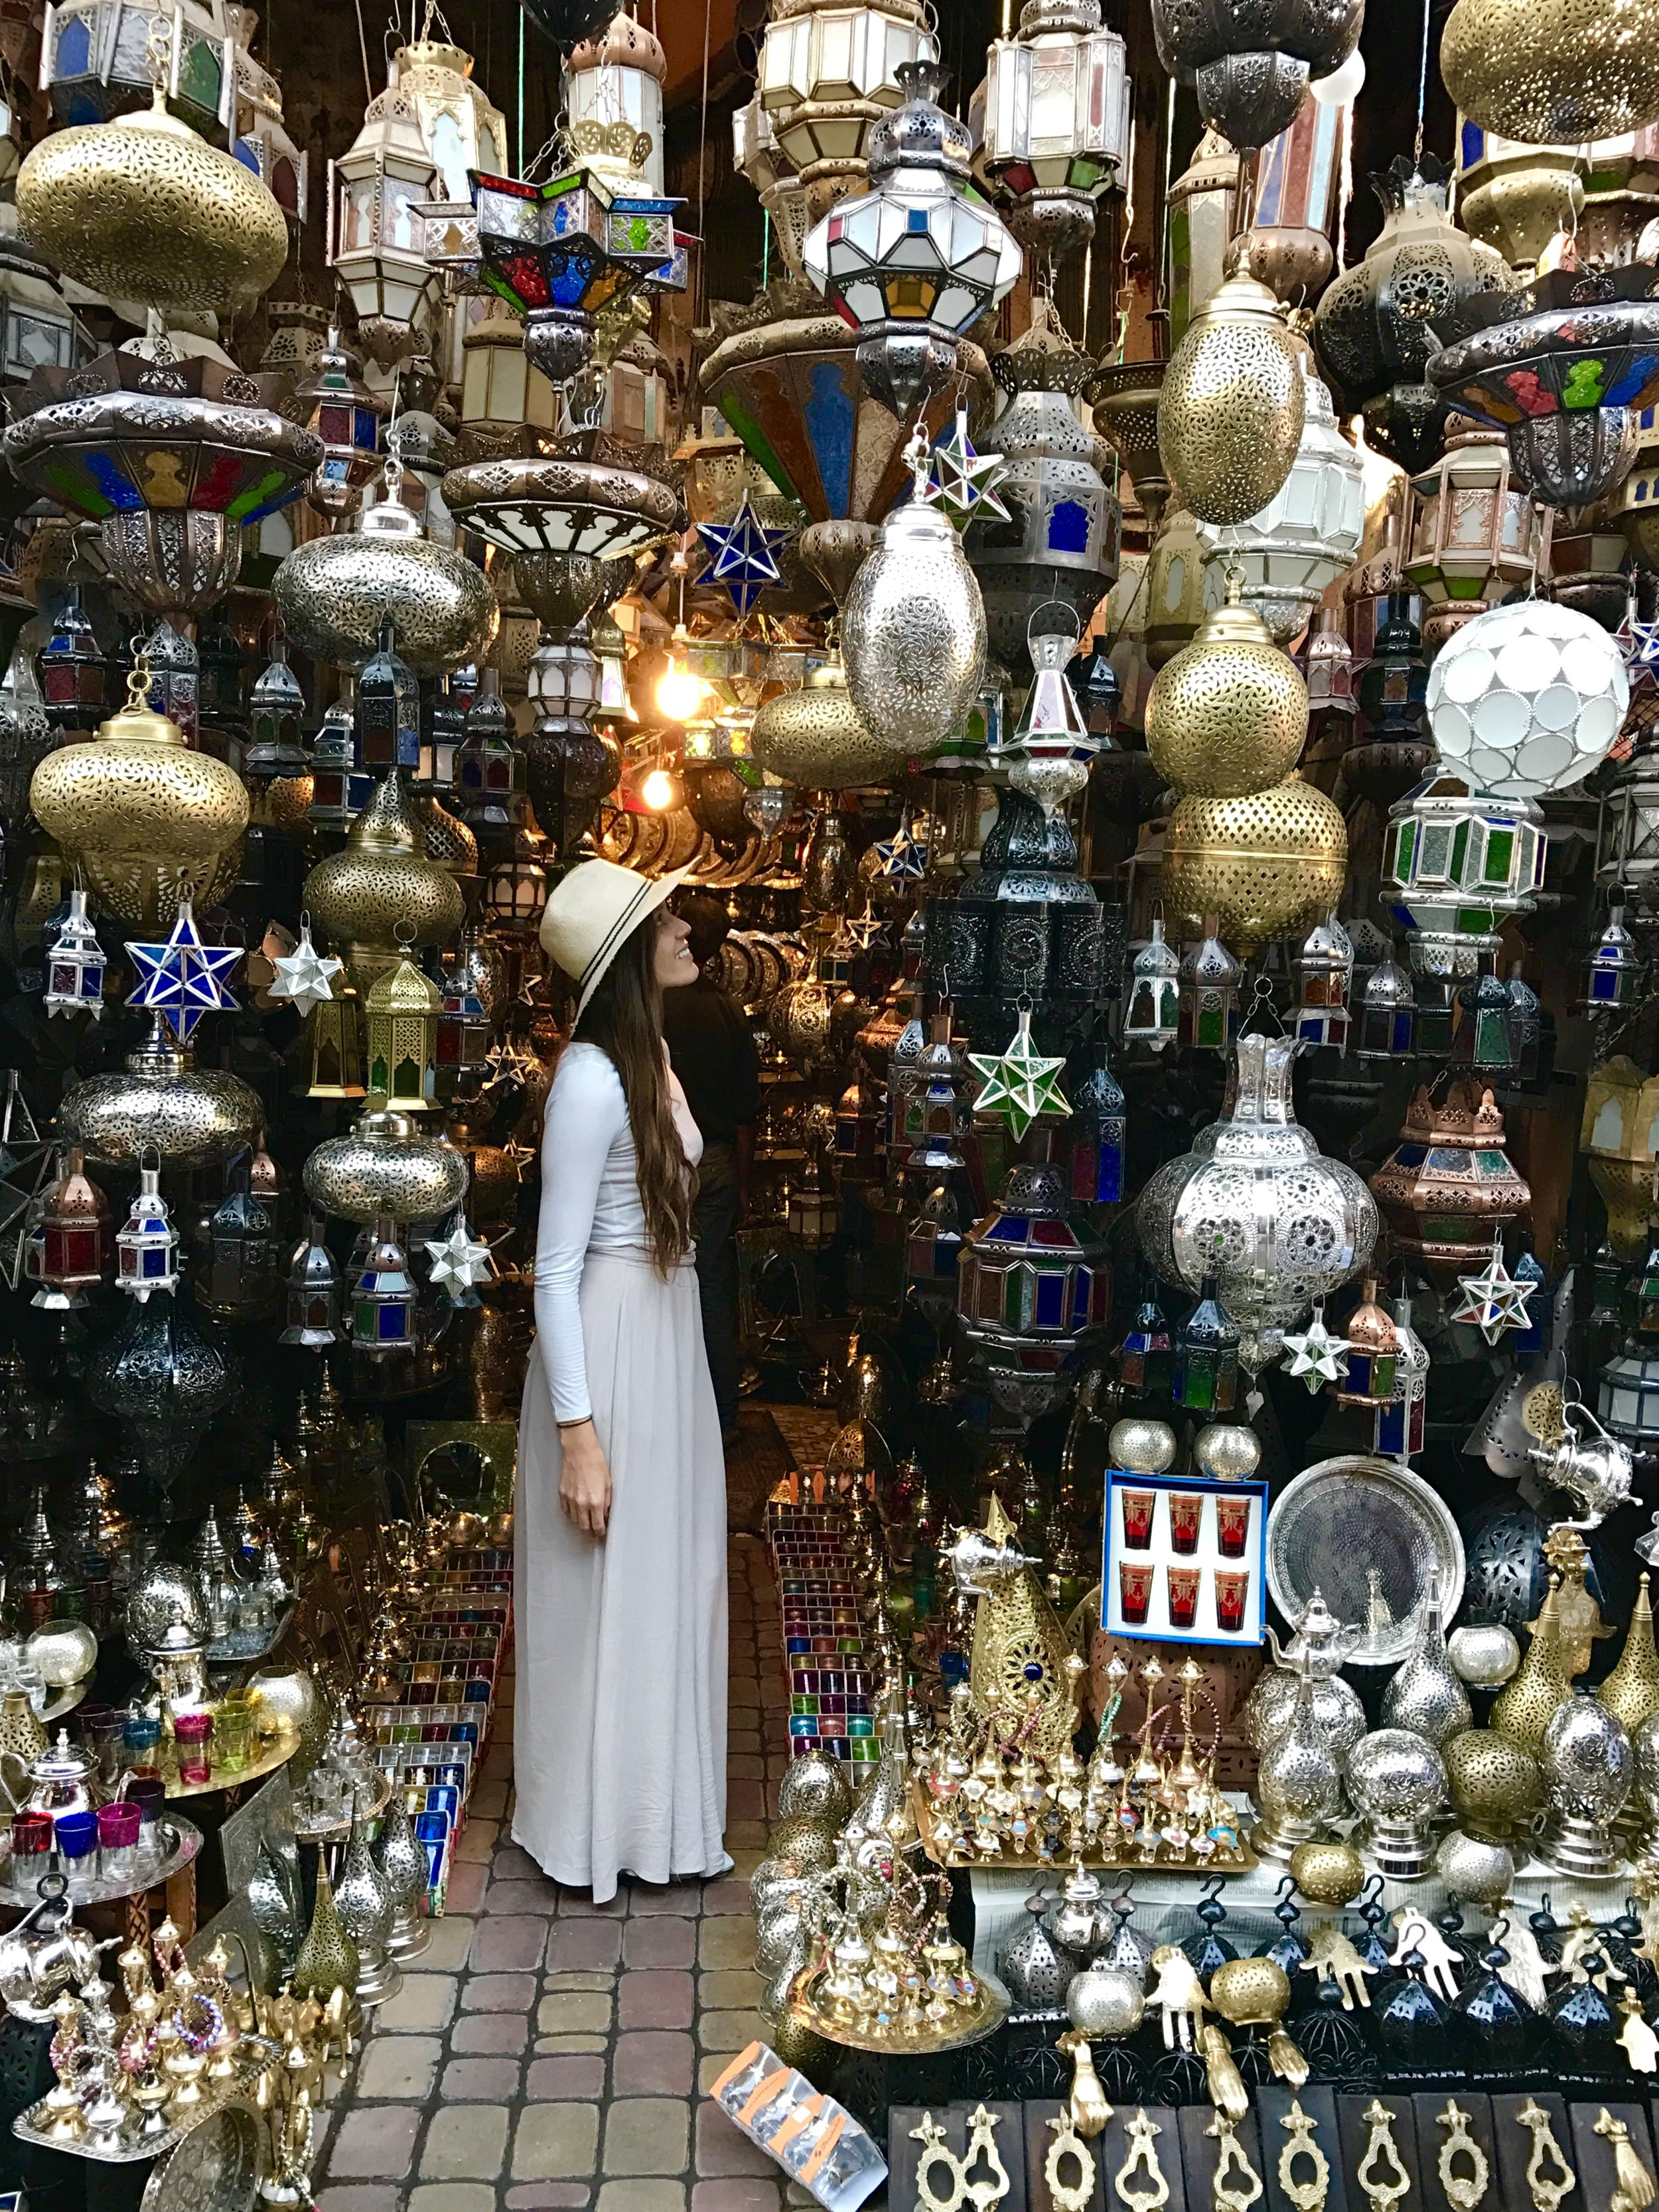 Lantern Shop in the Marrakech Souk. I bought tea glasses here, I was hooked on mint tea after my trip to morocco!